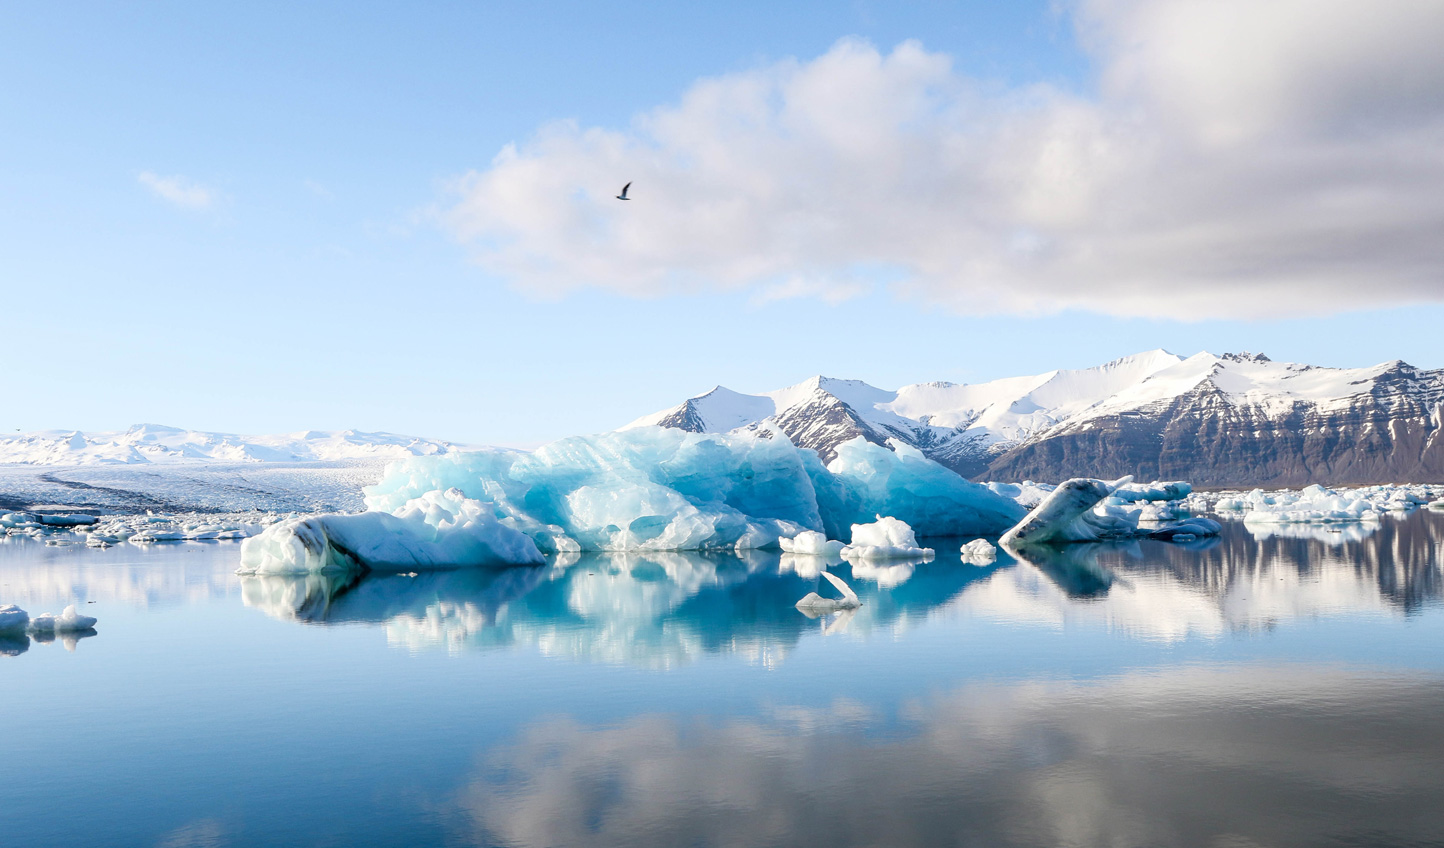 Glide across the serene waters of Jokulsarlon